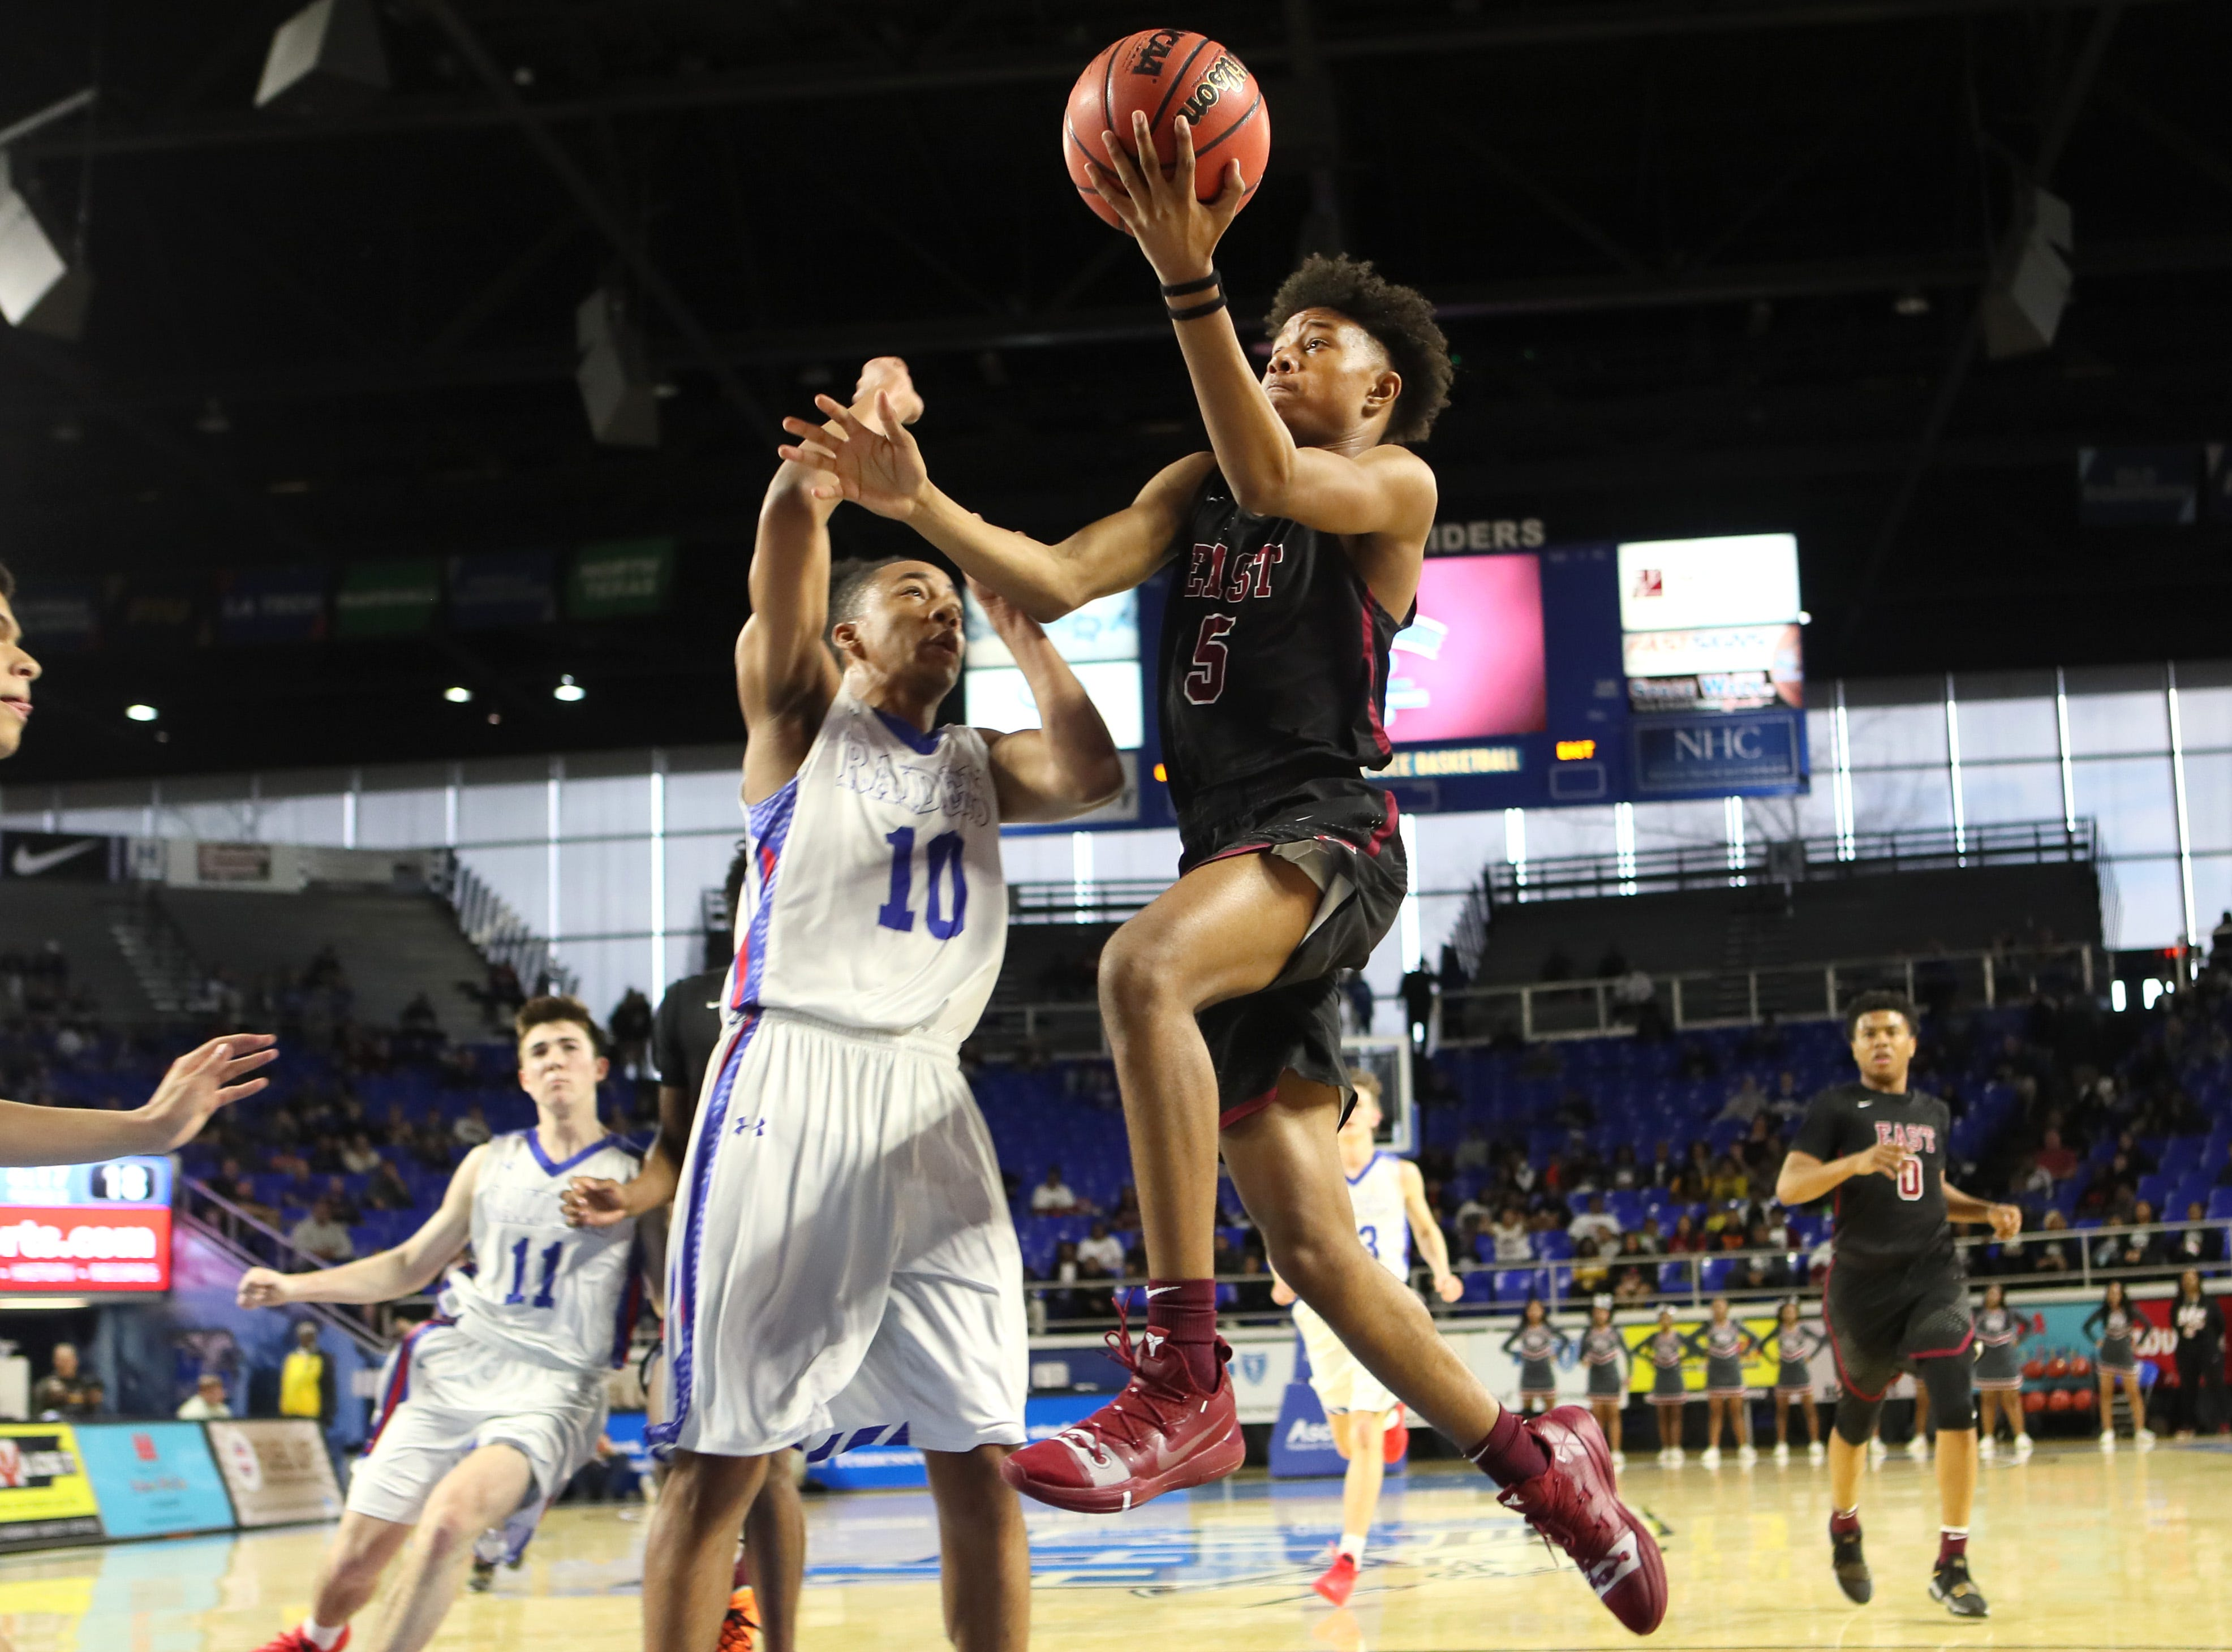 Memphis East's Tadarius Jacobs tries to lay the ball up past Cleveland's Jacobi Wood during the TSSAA Division I basketball state tournament at the Murphy Center in Murfreesboro, Tenn. on Thursday, March 14, 2019.